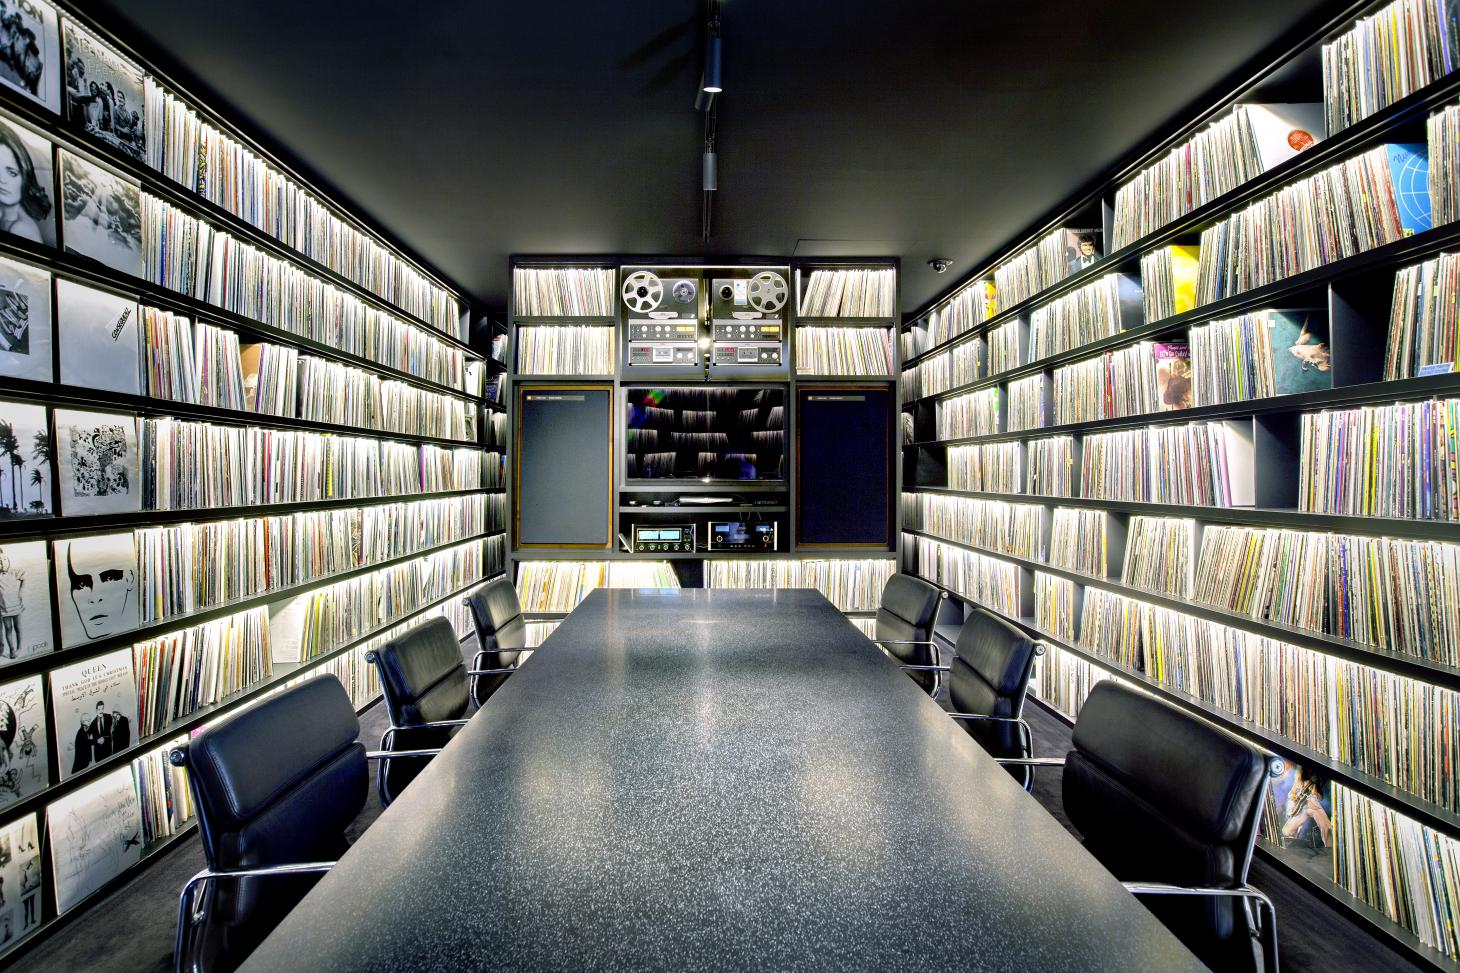 64,000 vinyl record collection at 2manydjs recording studio home